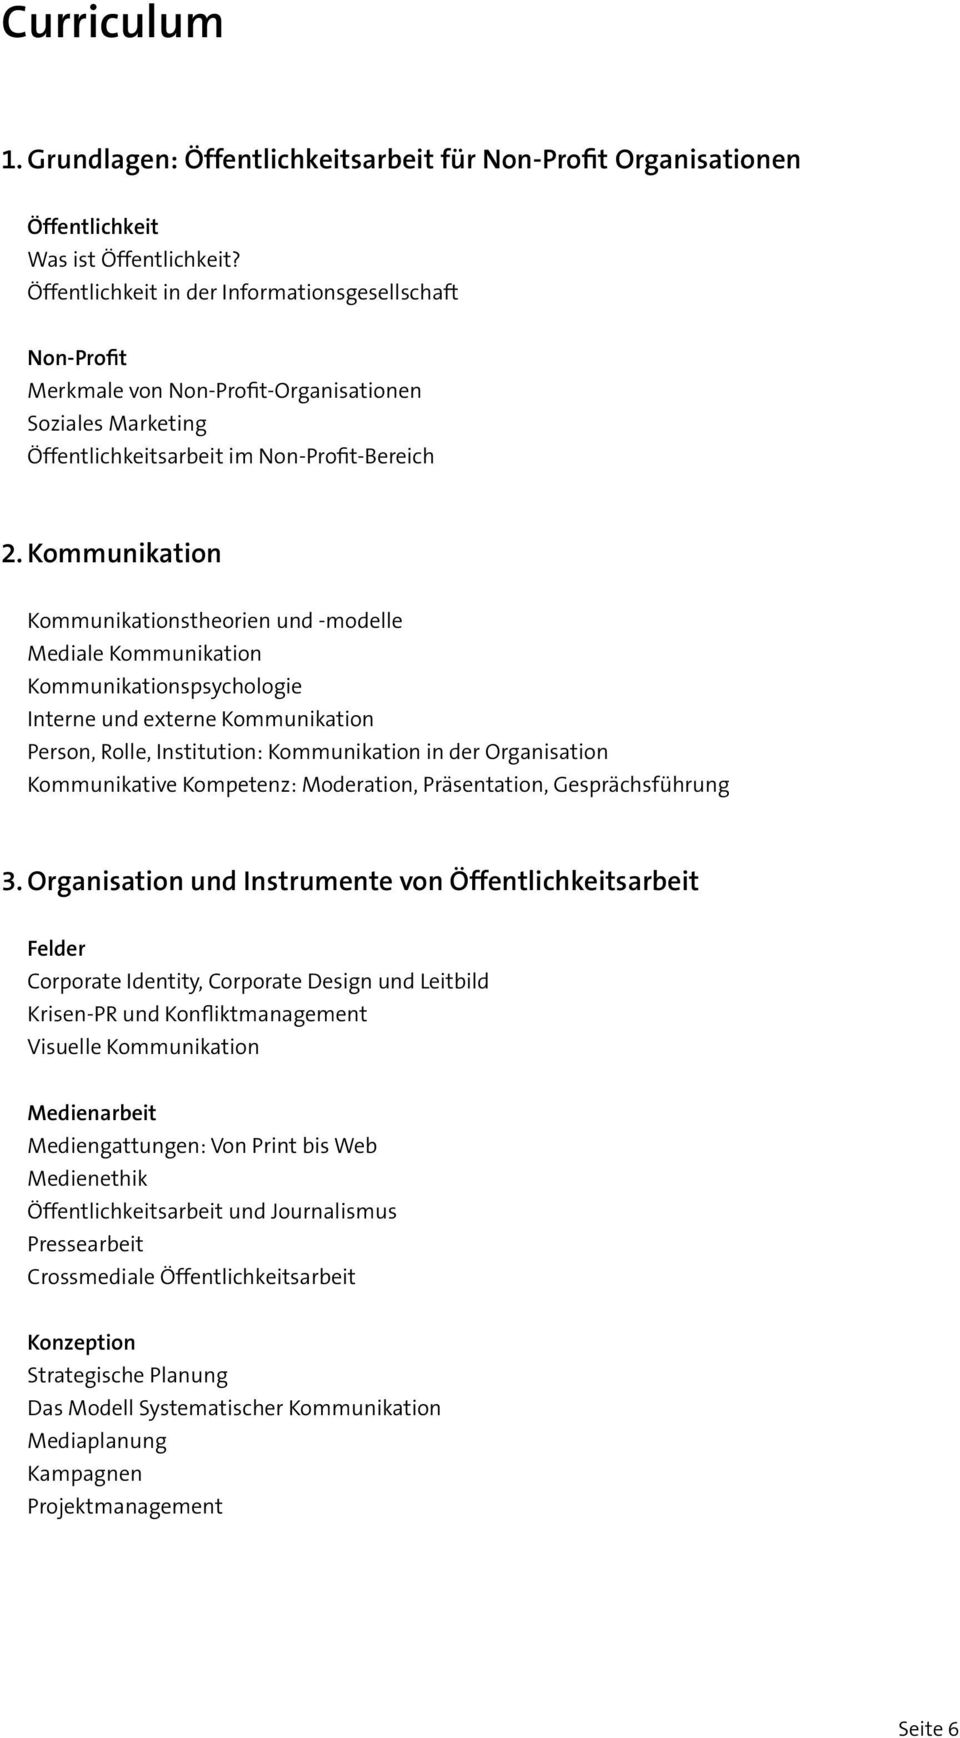 Kommunikation Kommunikationstheorien und -modelle Mediale Kommunikation Kommunikationspsychologie Interne und externe Kommunikation Person, Rolle, Institution: Kommunikation in der Organisation